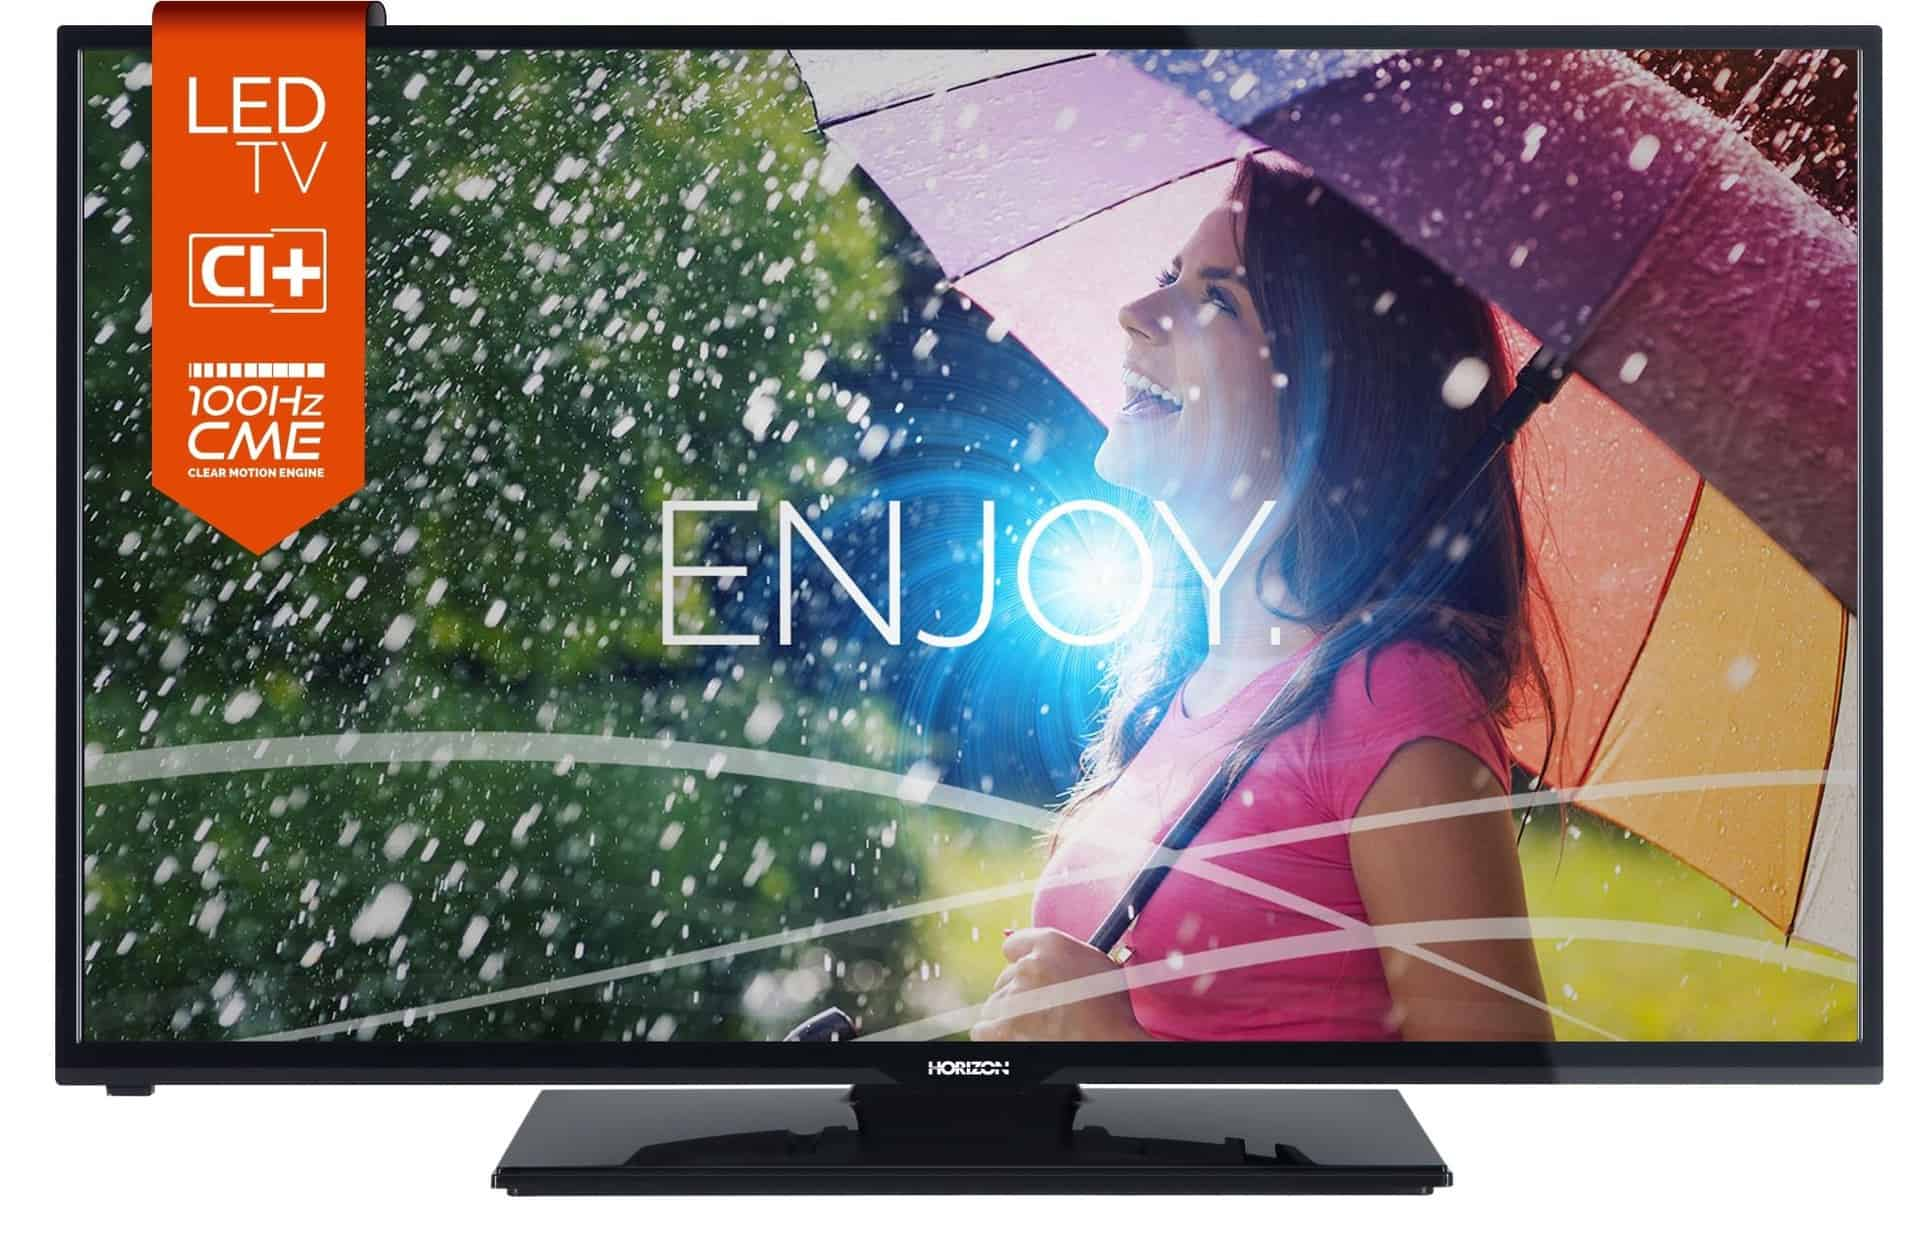 Televizor LED Horizon, 106 cm, 42HL730F, Full HD - enjoy